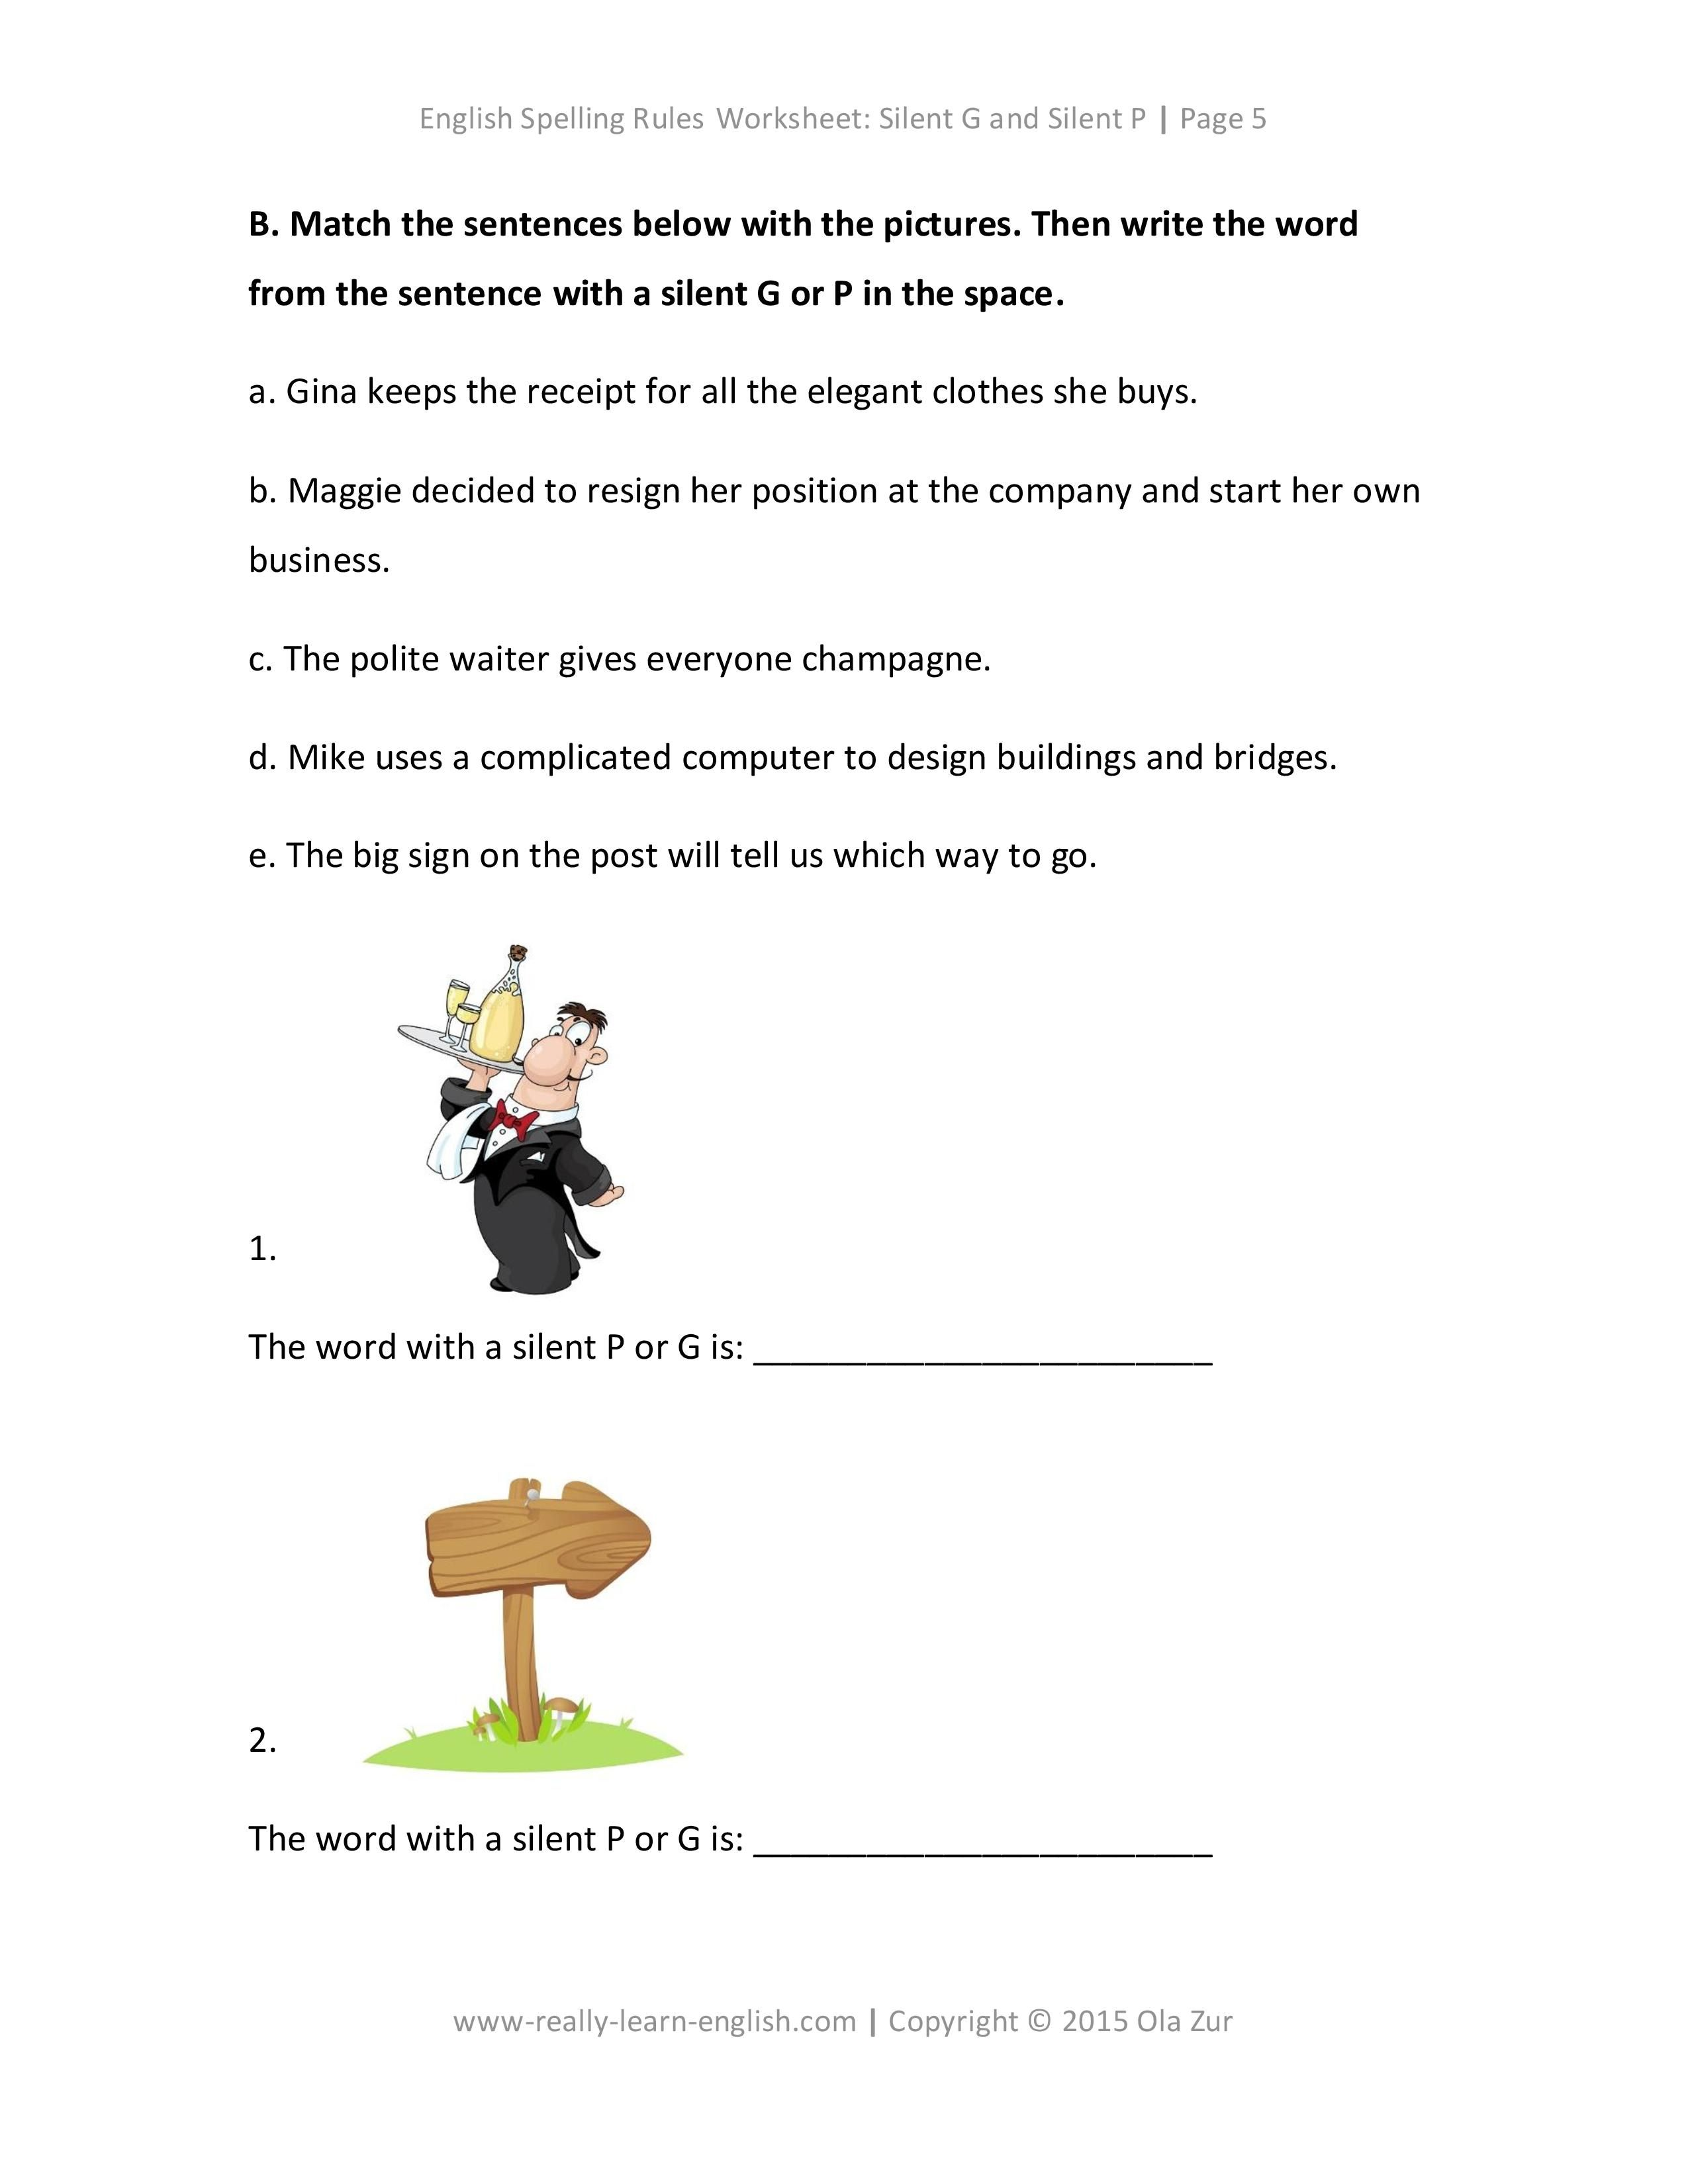 The Complete List Of English Spelling Rules Lesson 6 Silent G And Silent P Rules Examples Worksheet And Answer Key English Spelling Rules Spelling Rules English Spelling